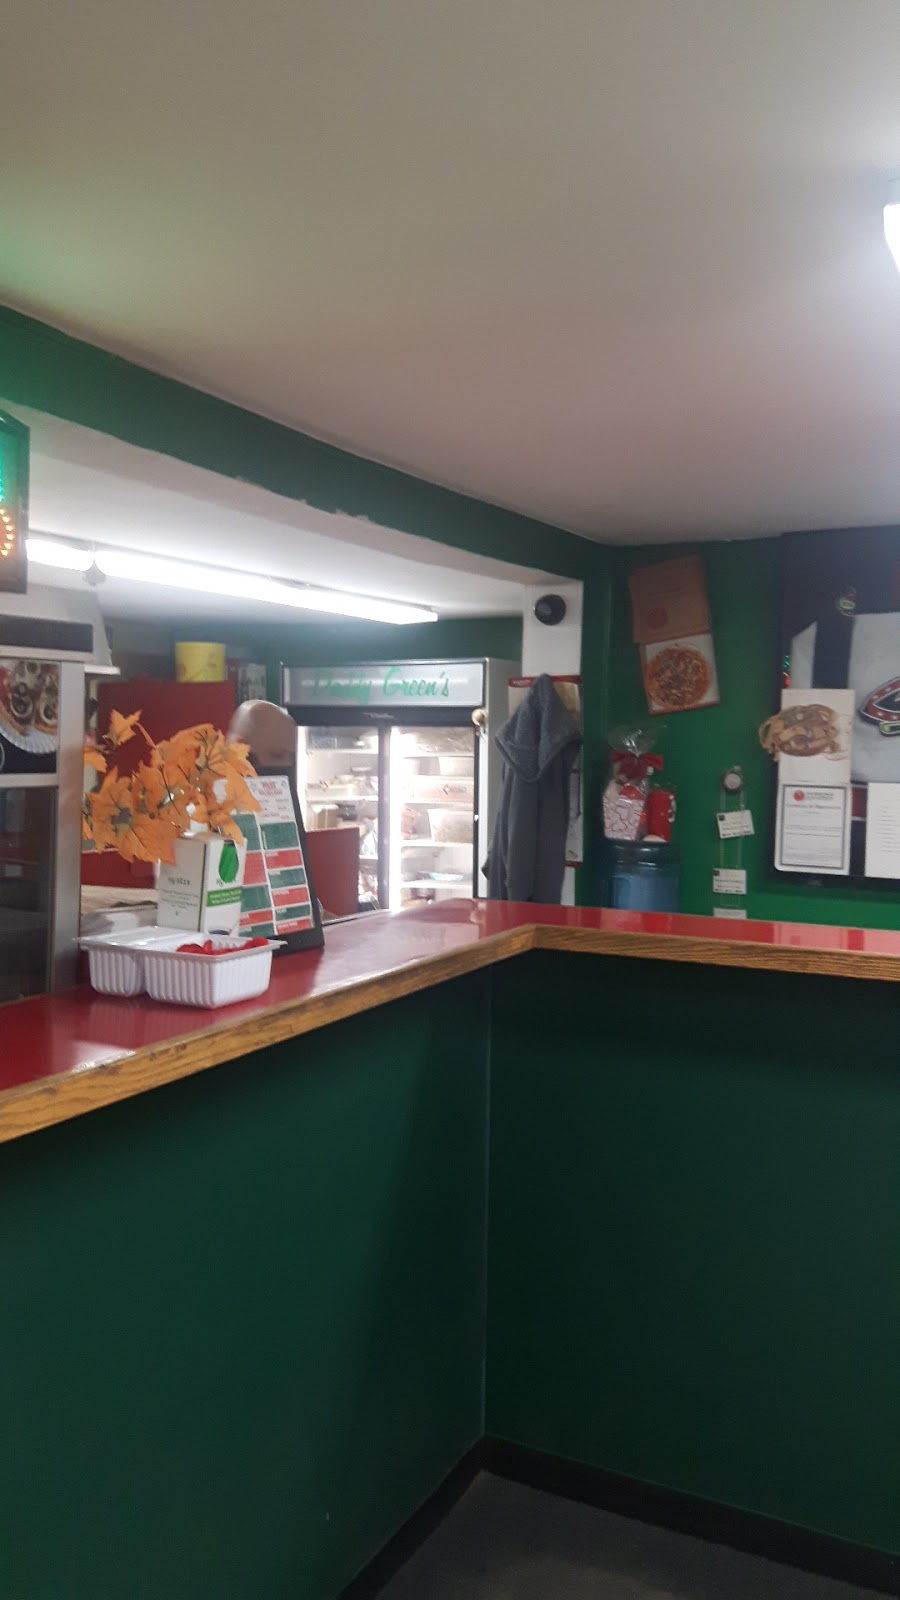 Daddy Greens Pizza | meal delivery | 1147 Hwy 2, Lantz, NS B2S 1P5, Canada | 9028838855 OR +1 902-883-8855